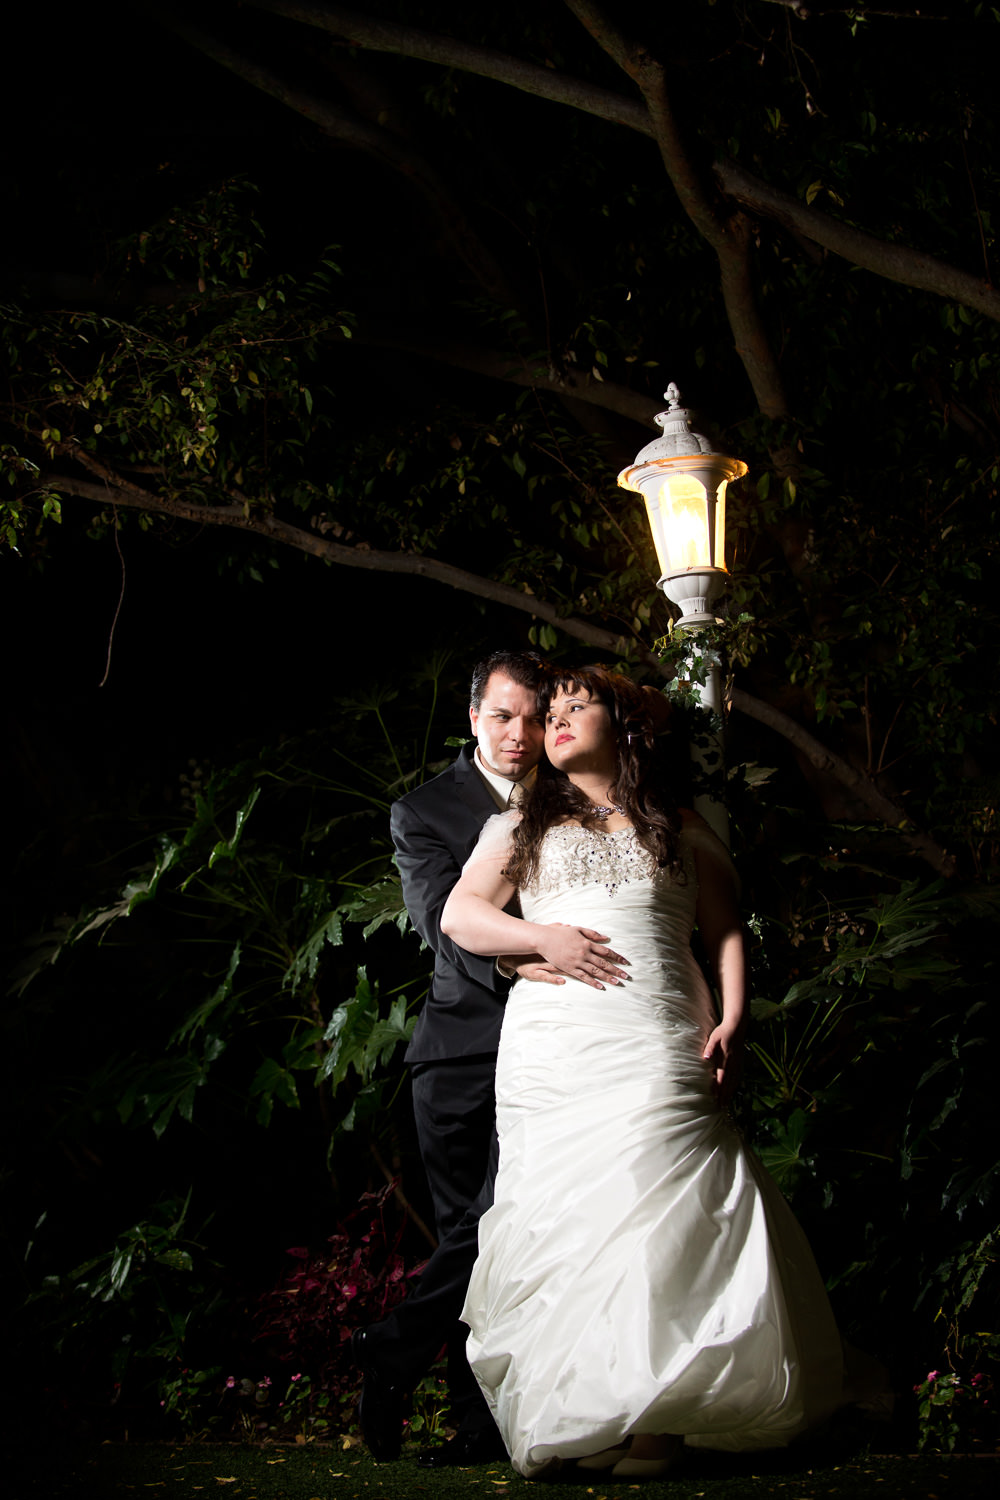 f27-photography-ventura-county-somis-hartley-botanica-wedding-bride-and-groom-next-to-lamp-post